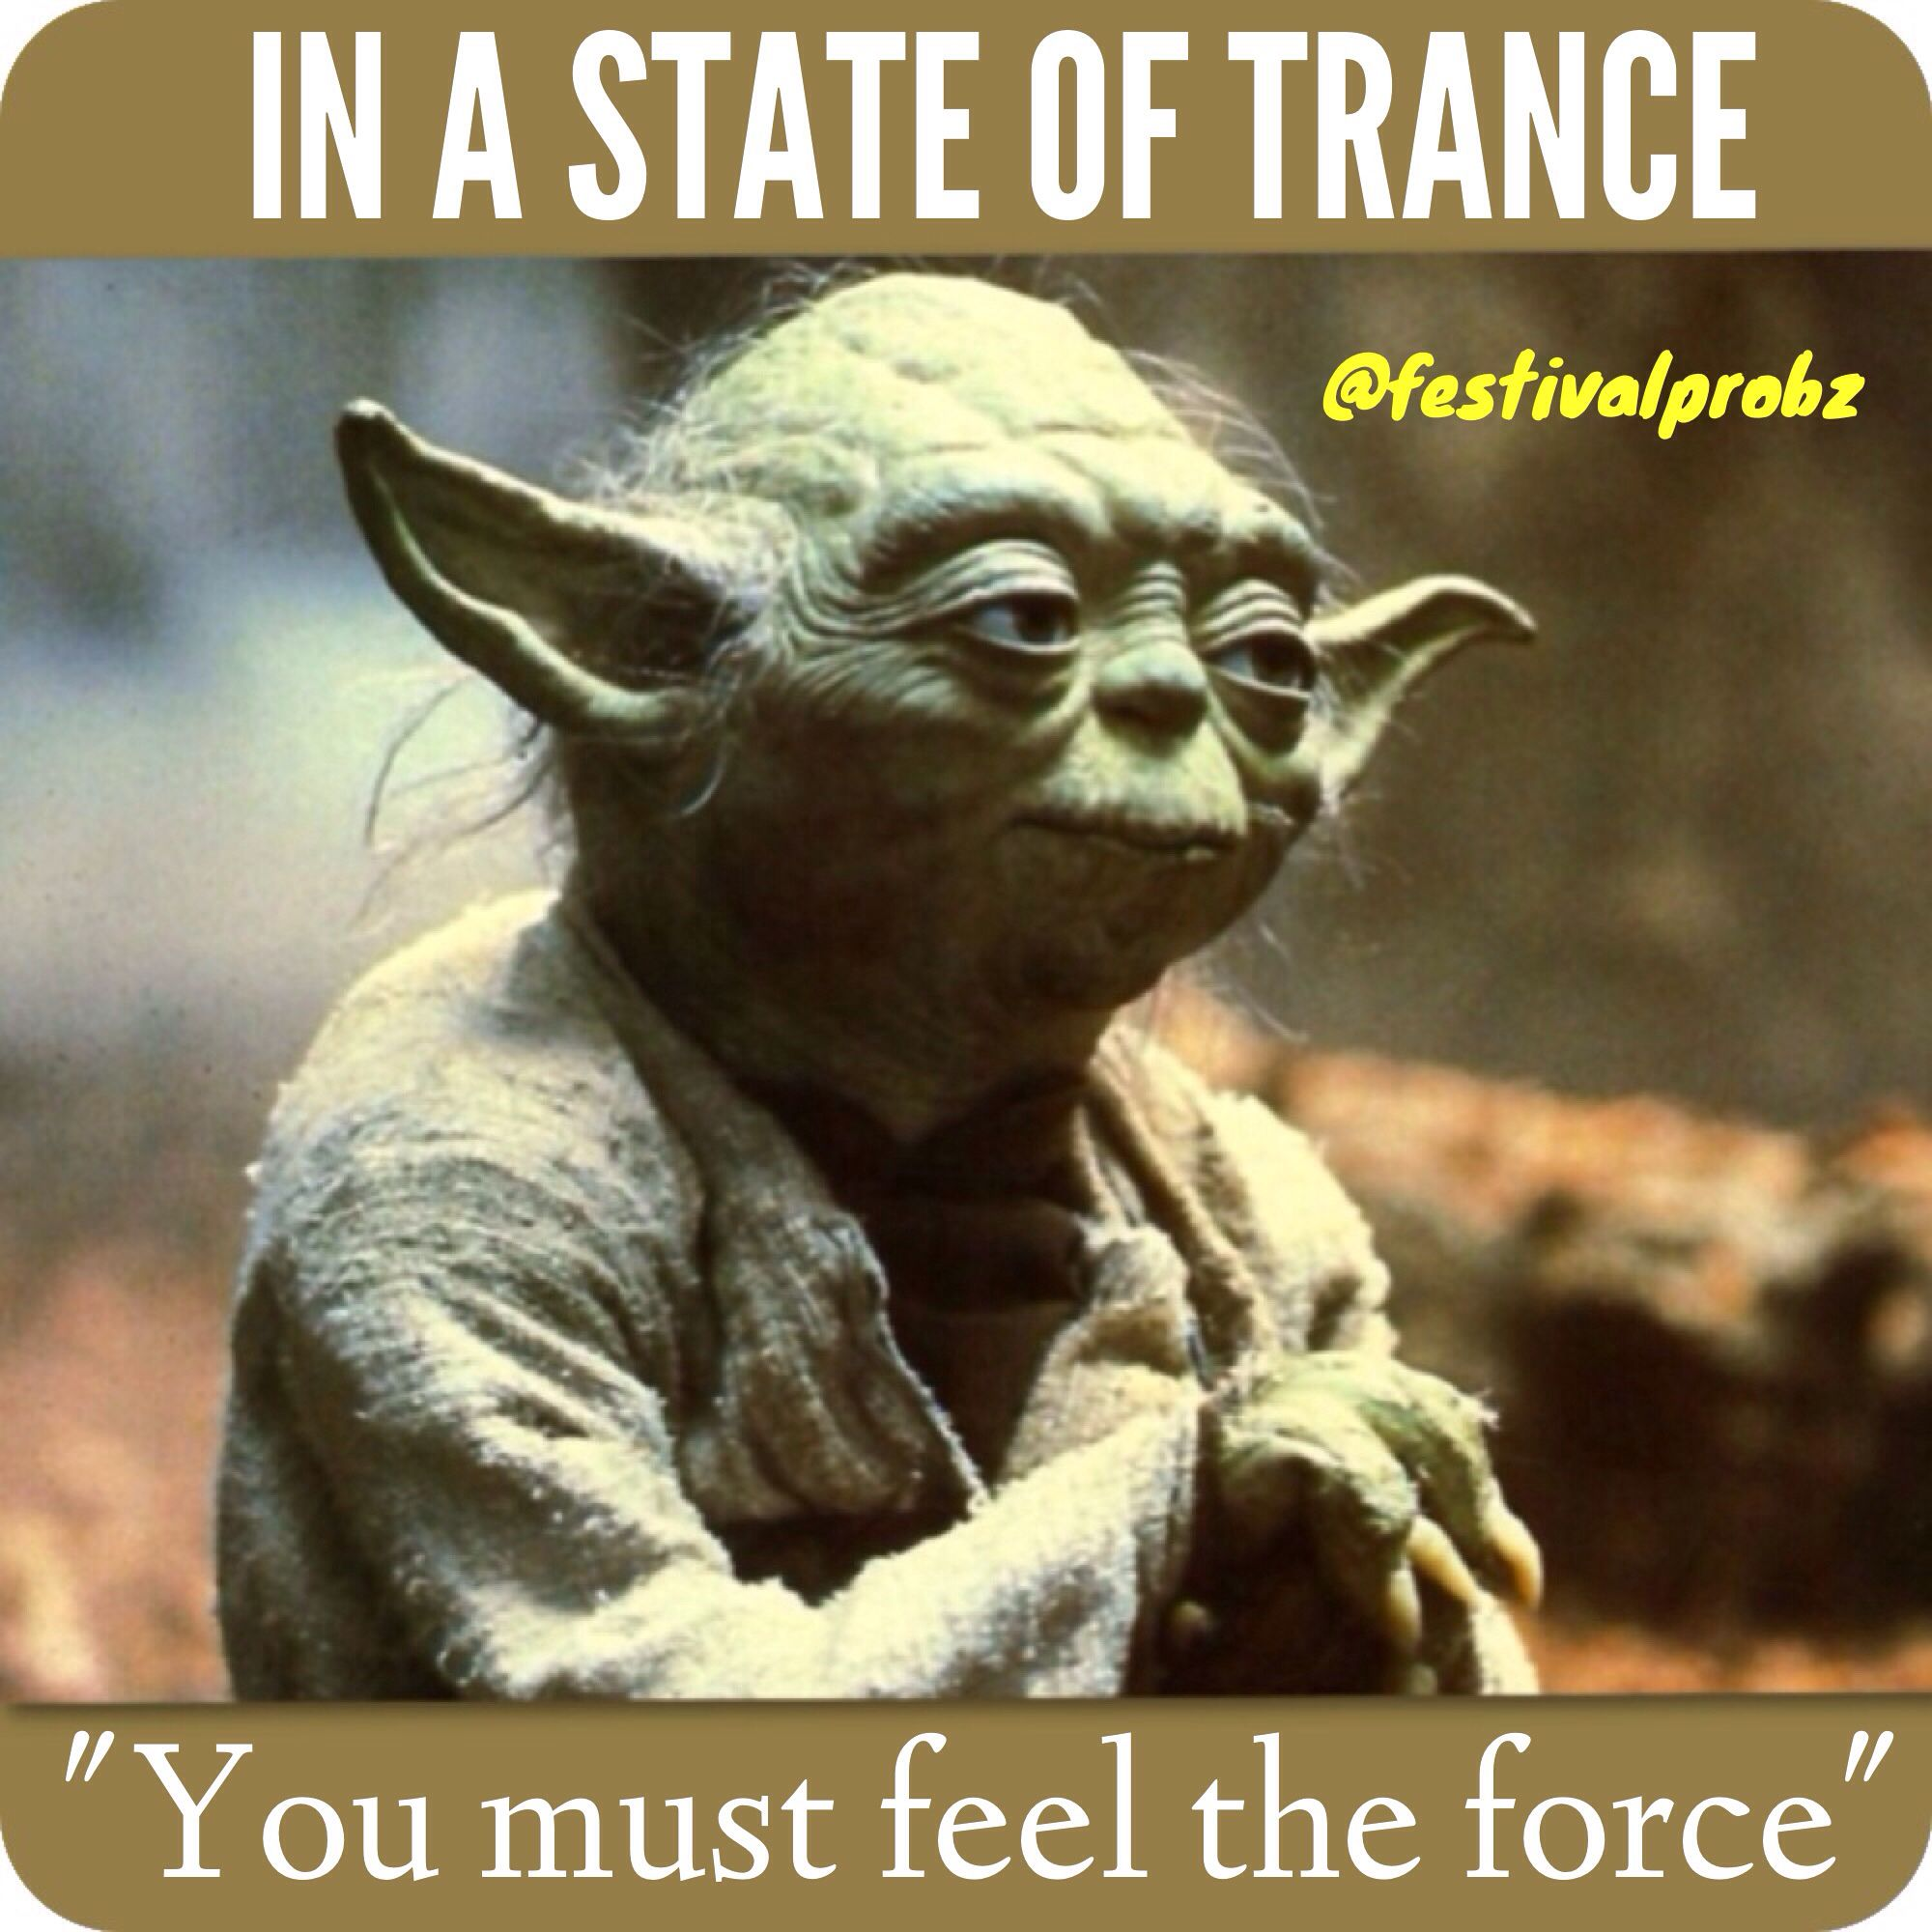 In a state of trance ASOT you must feel the force. Funny